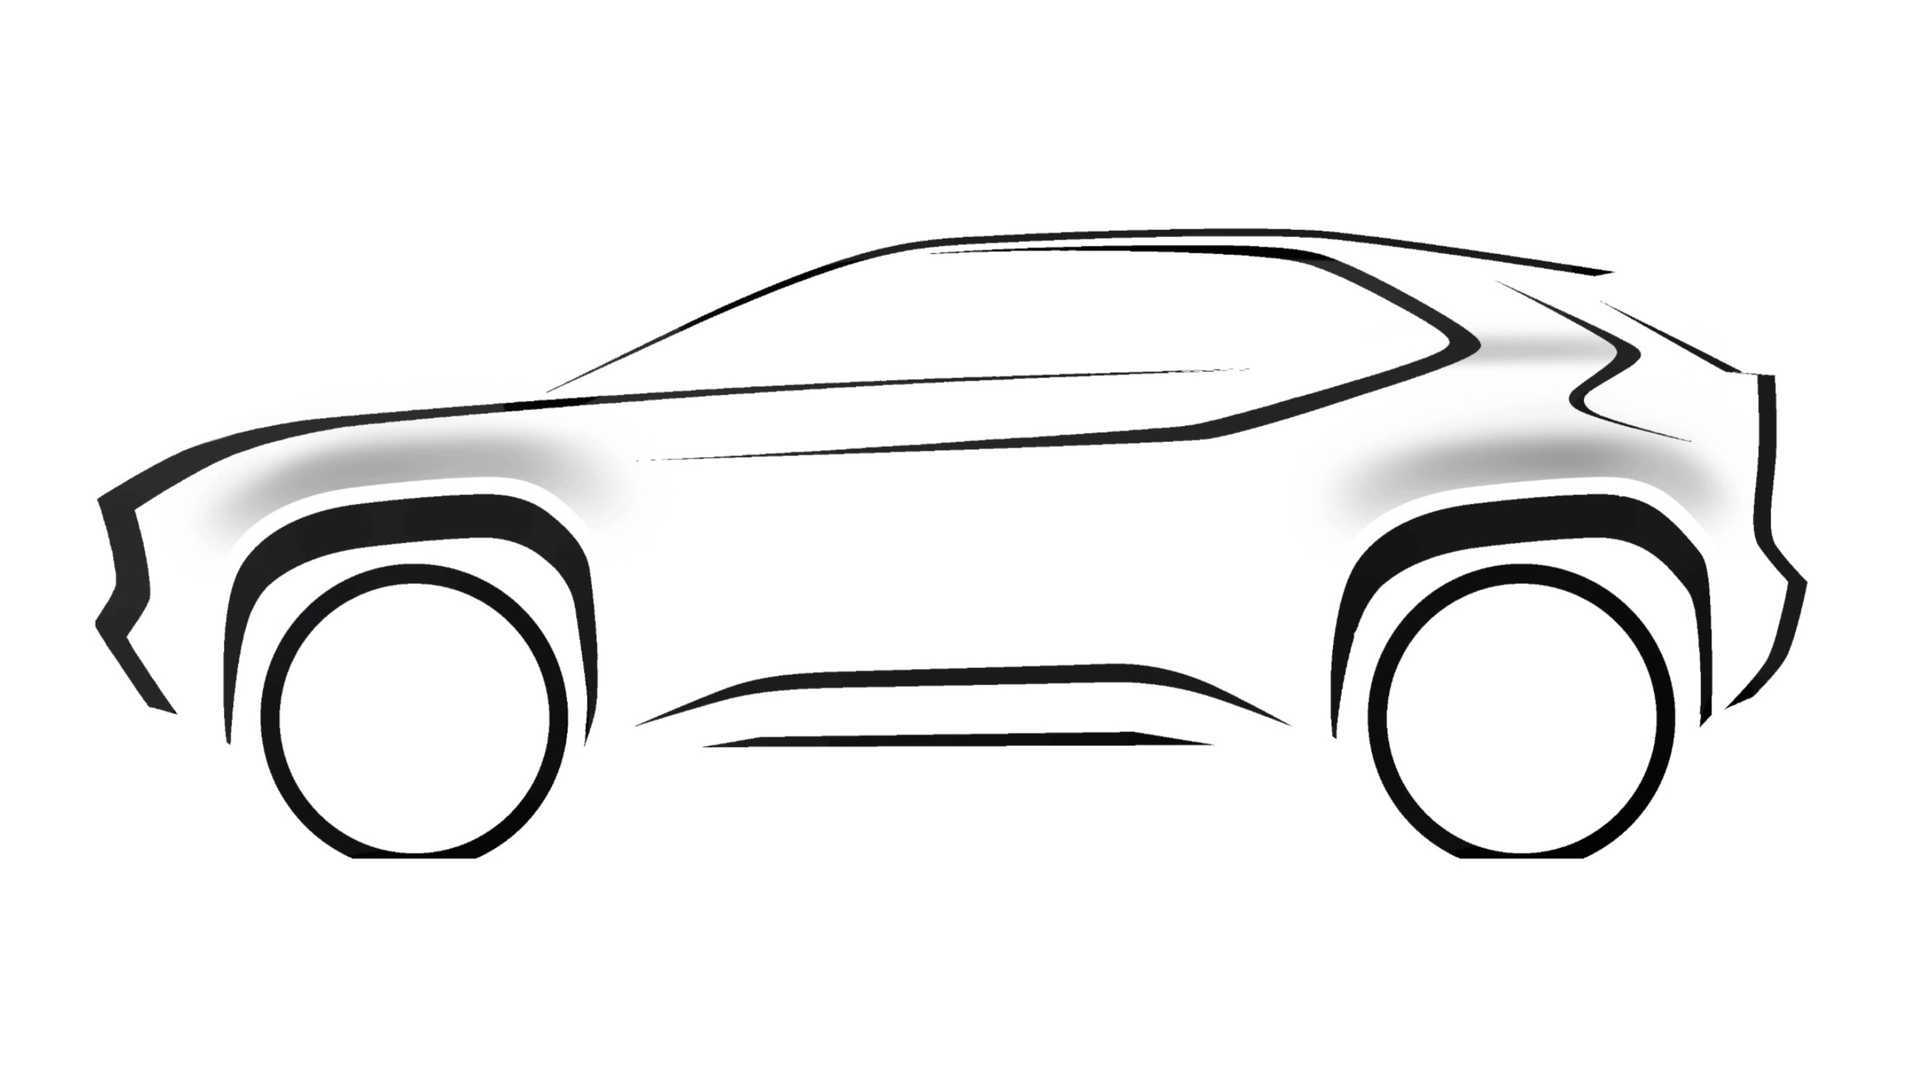 toyota-subcompact-crossover-teaser-1.jpg